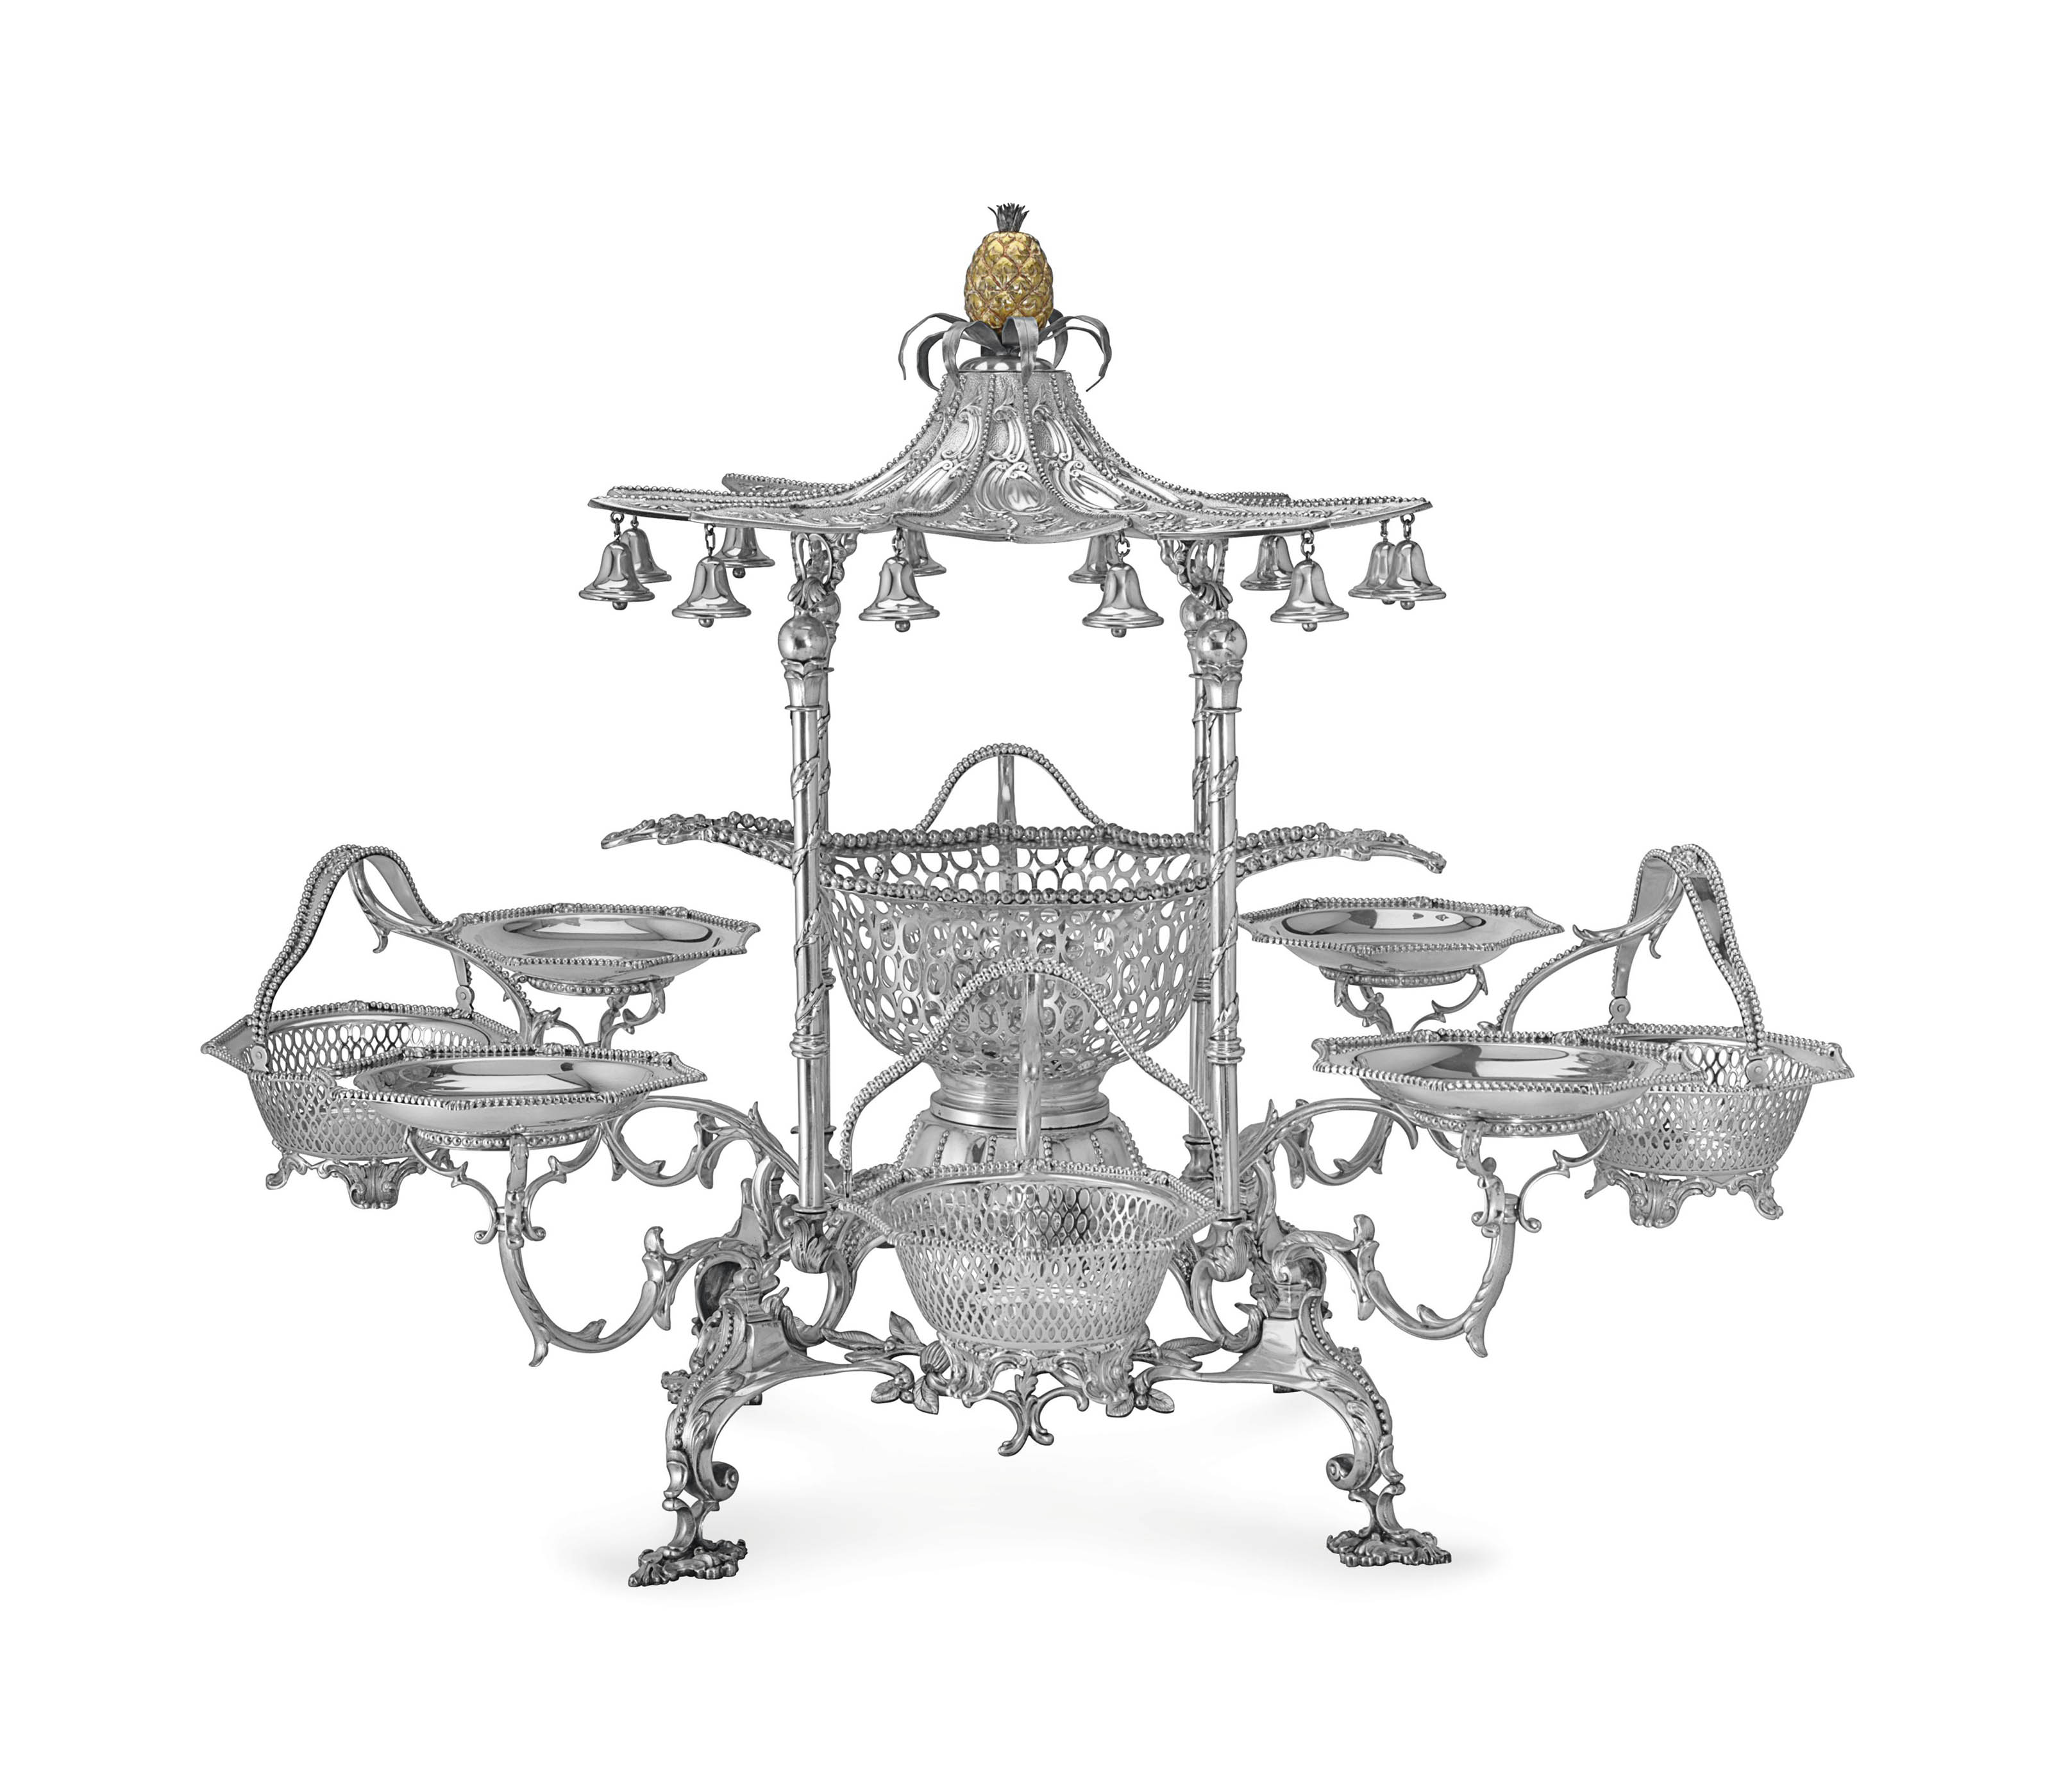 A MONUMENTAL PORTUGUESE SILVER EIGHT-BRANCH EPERGNE